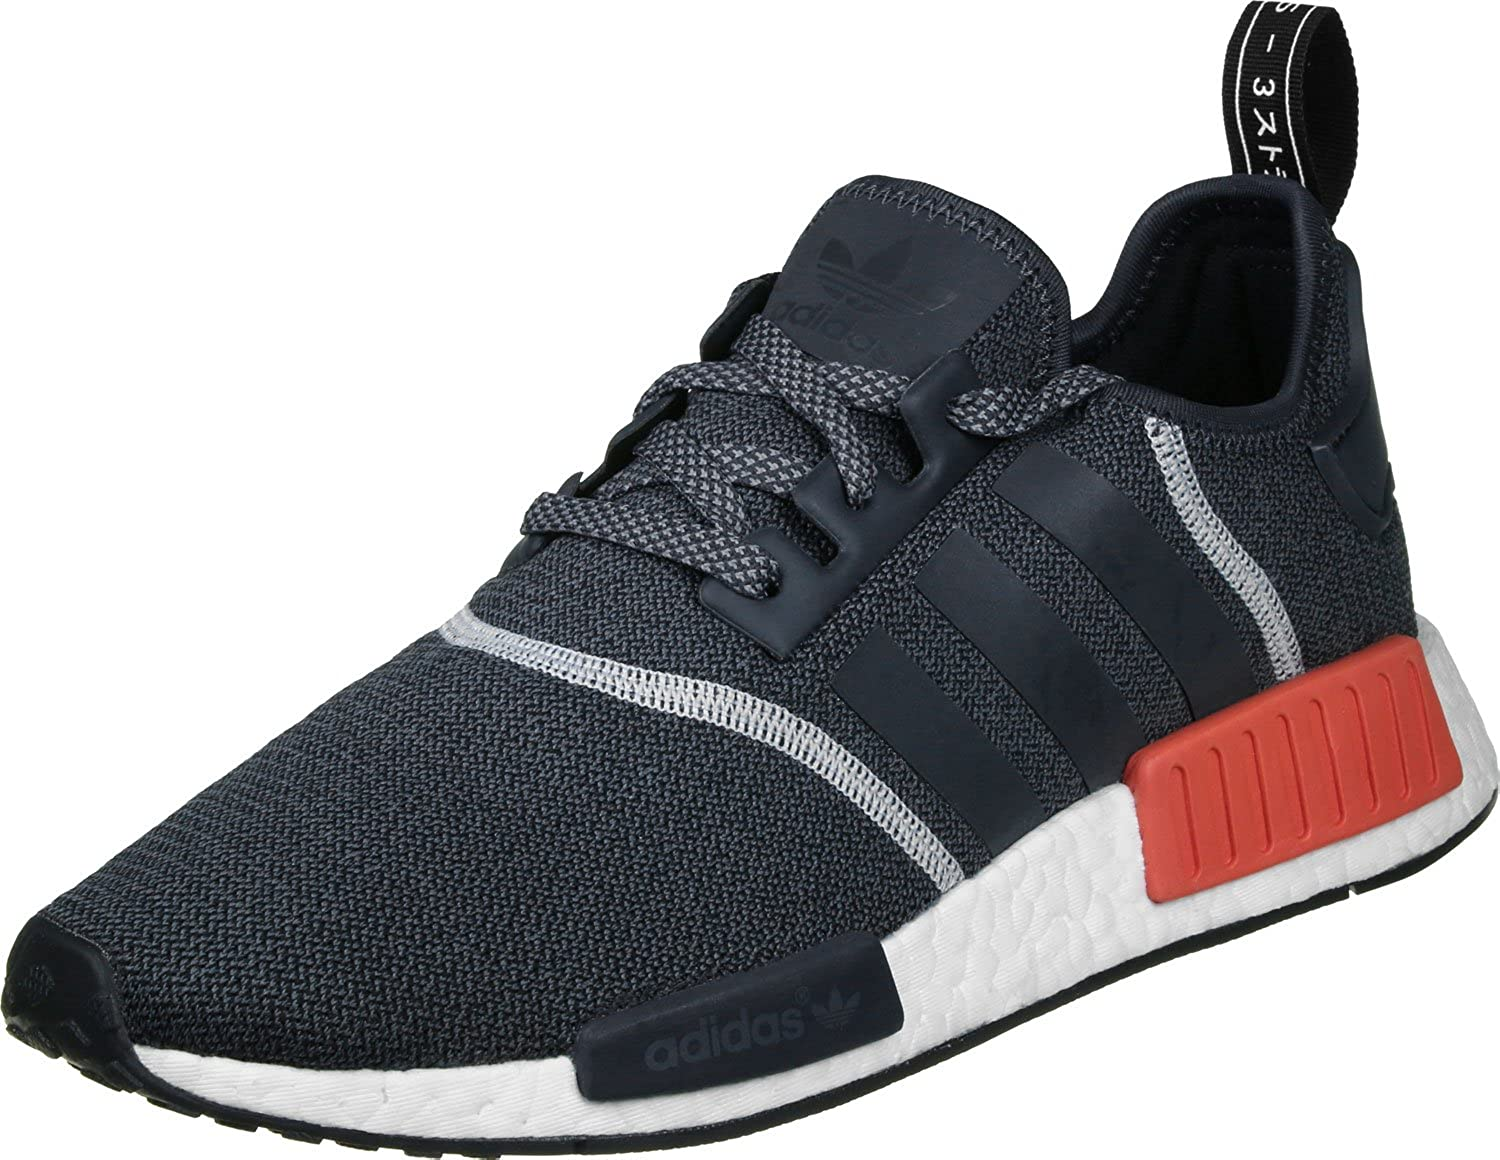 factory authentic 47360 20731 adidas Mens NMD_R1 Anthracite/White-Black Nylon